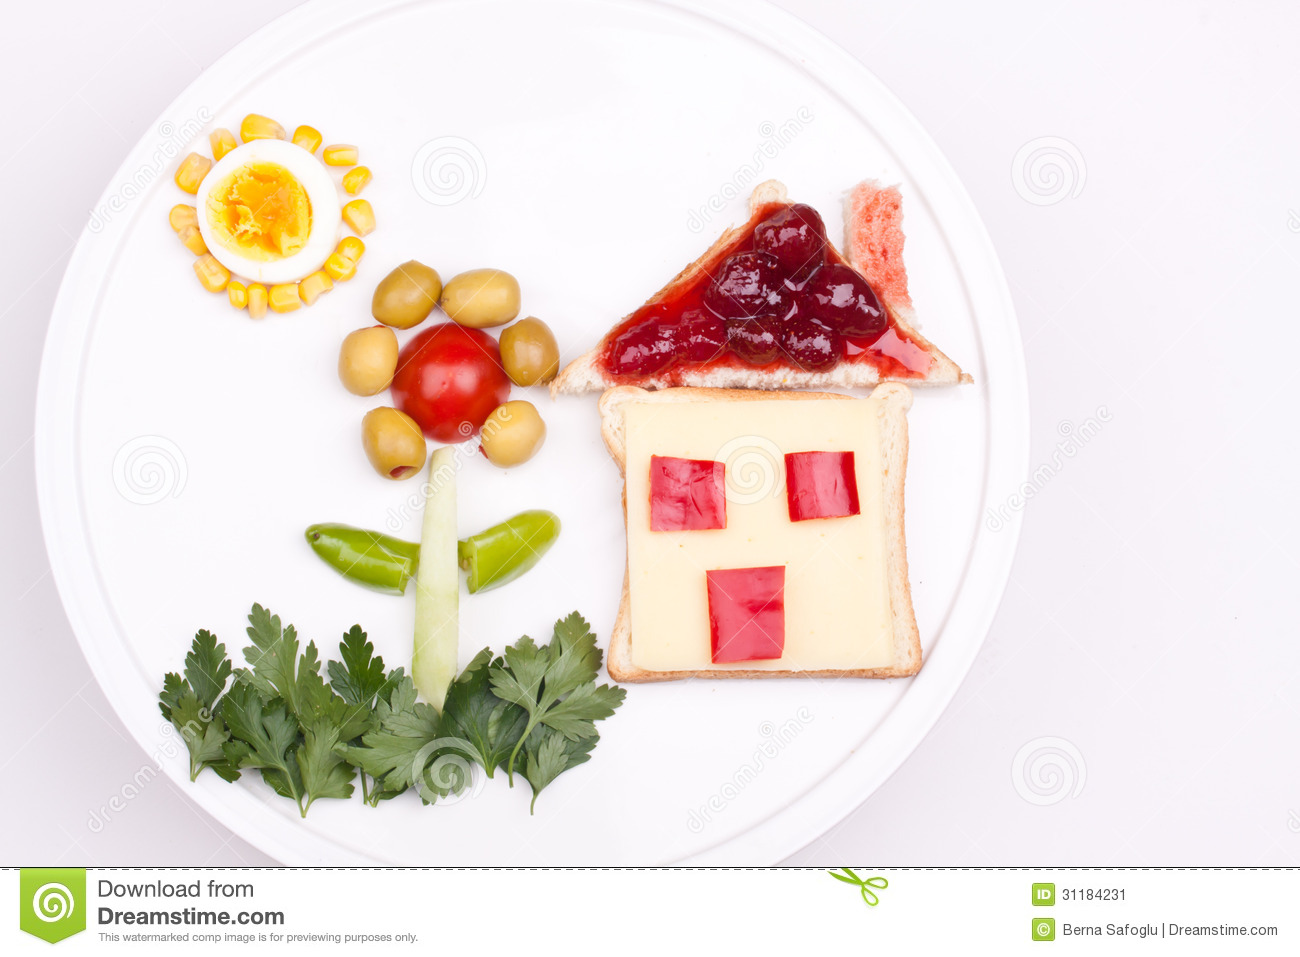 Breakfast For Kids Stock Image - Image: 31184231